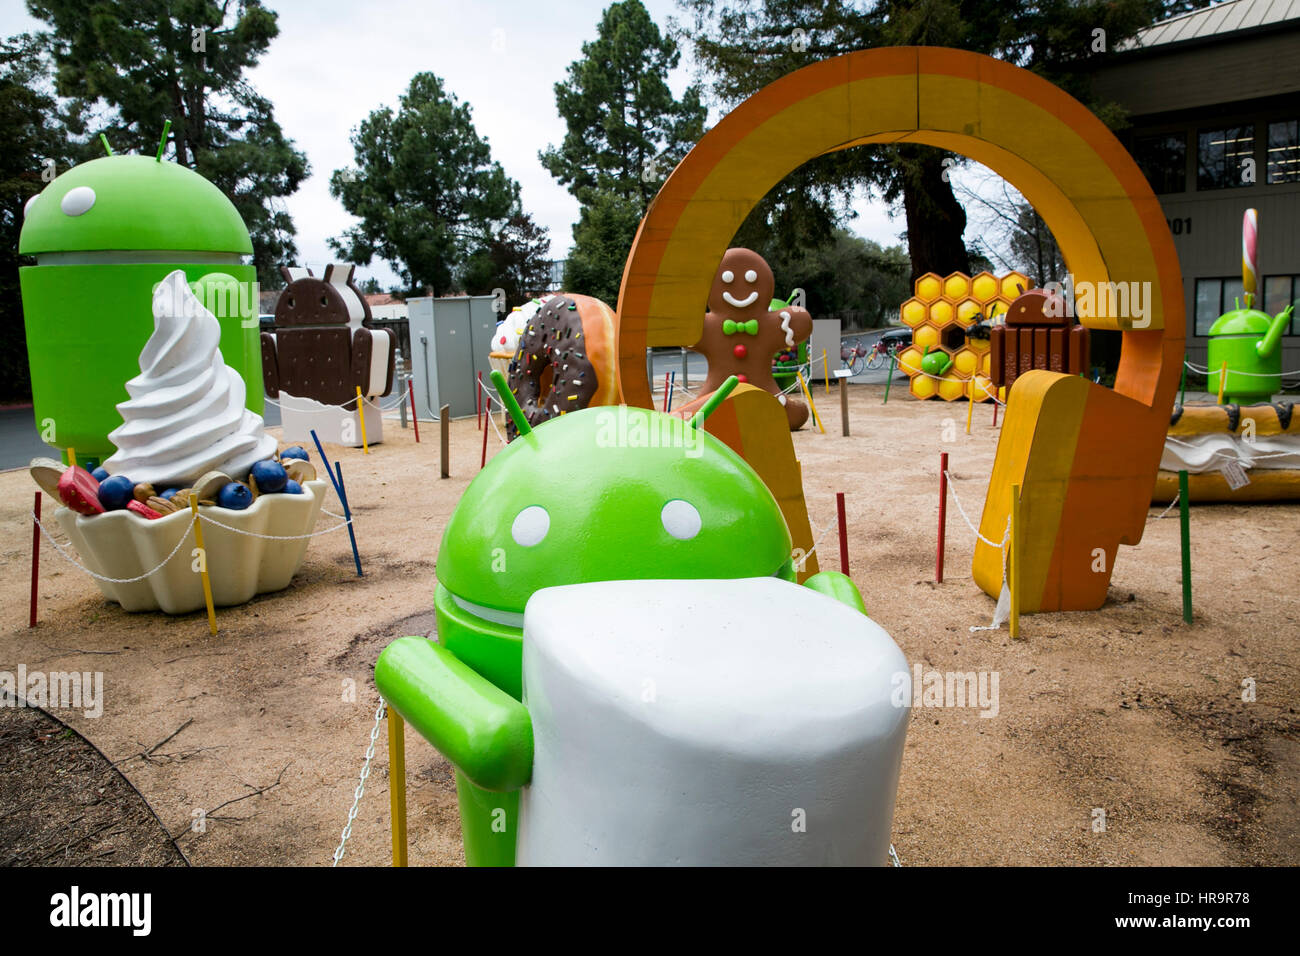 Superb A Garden Full Of Google Android Operating System Statues In Mountain View,  California, On February 18, 2017.